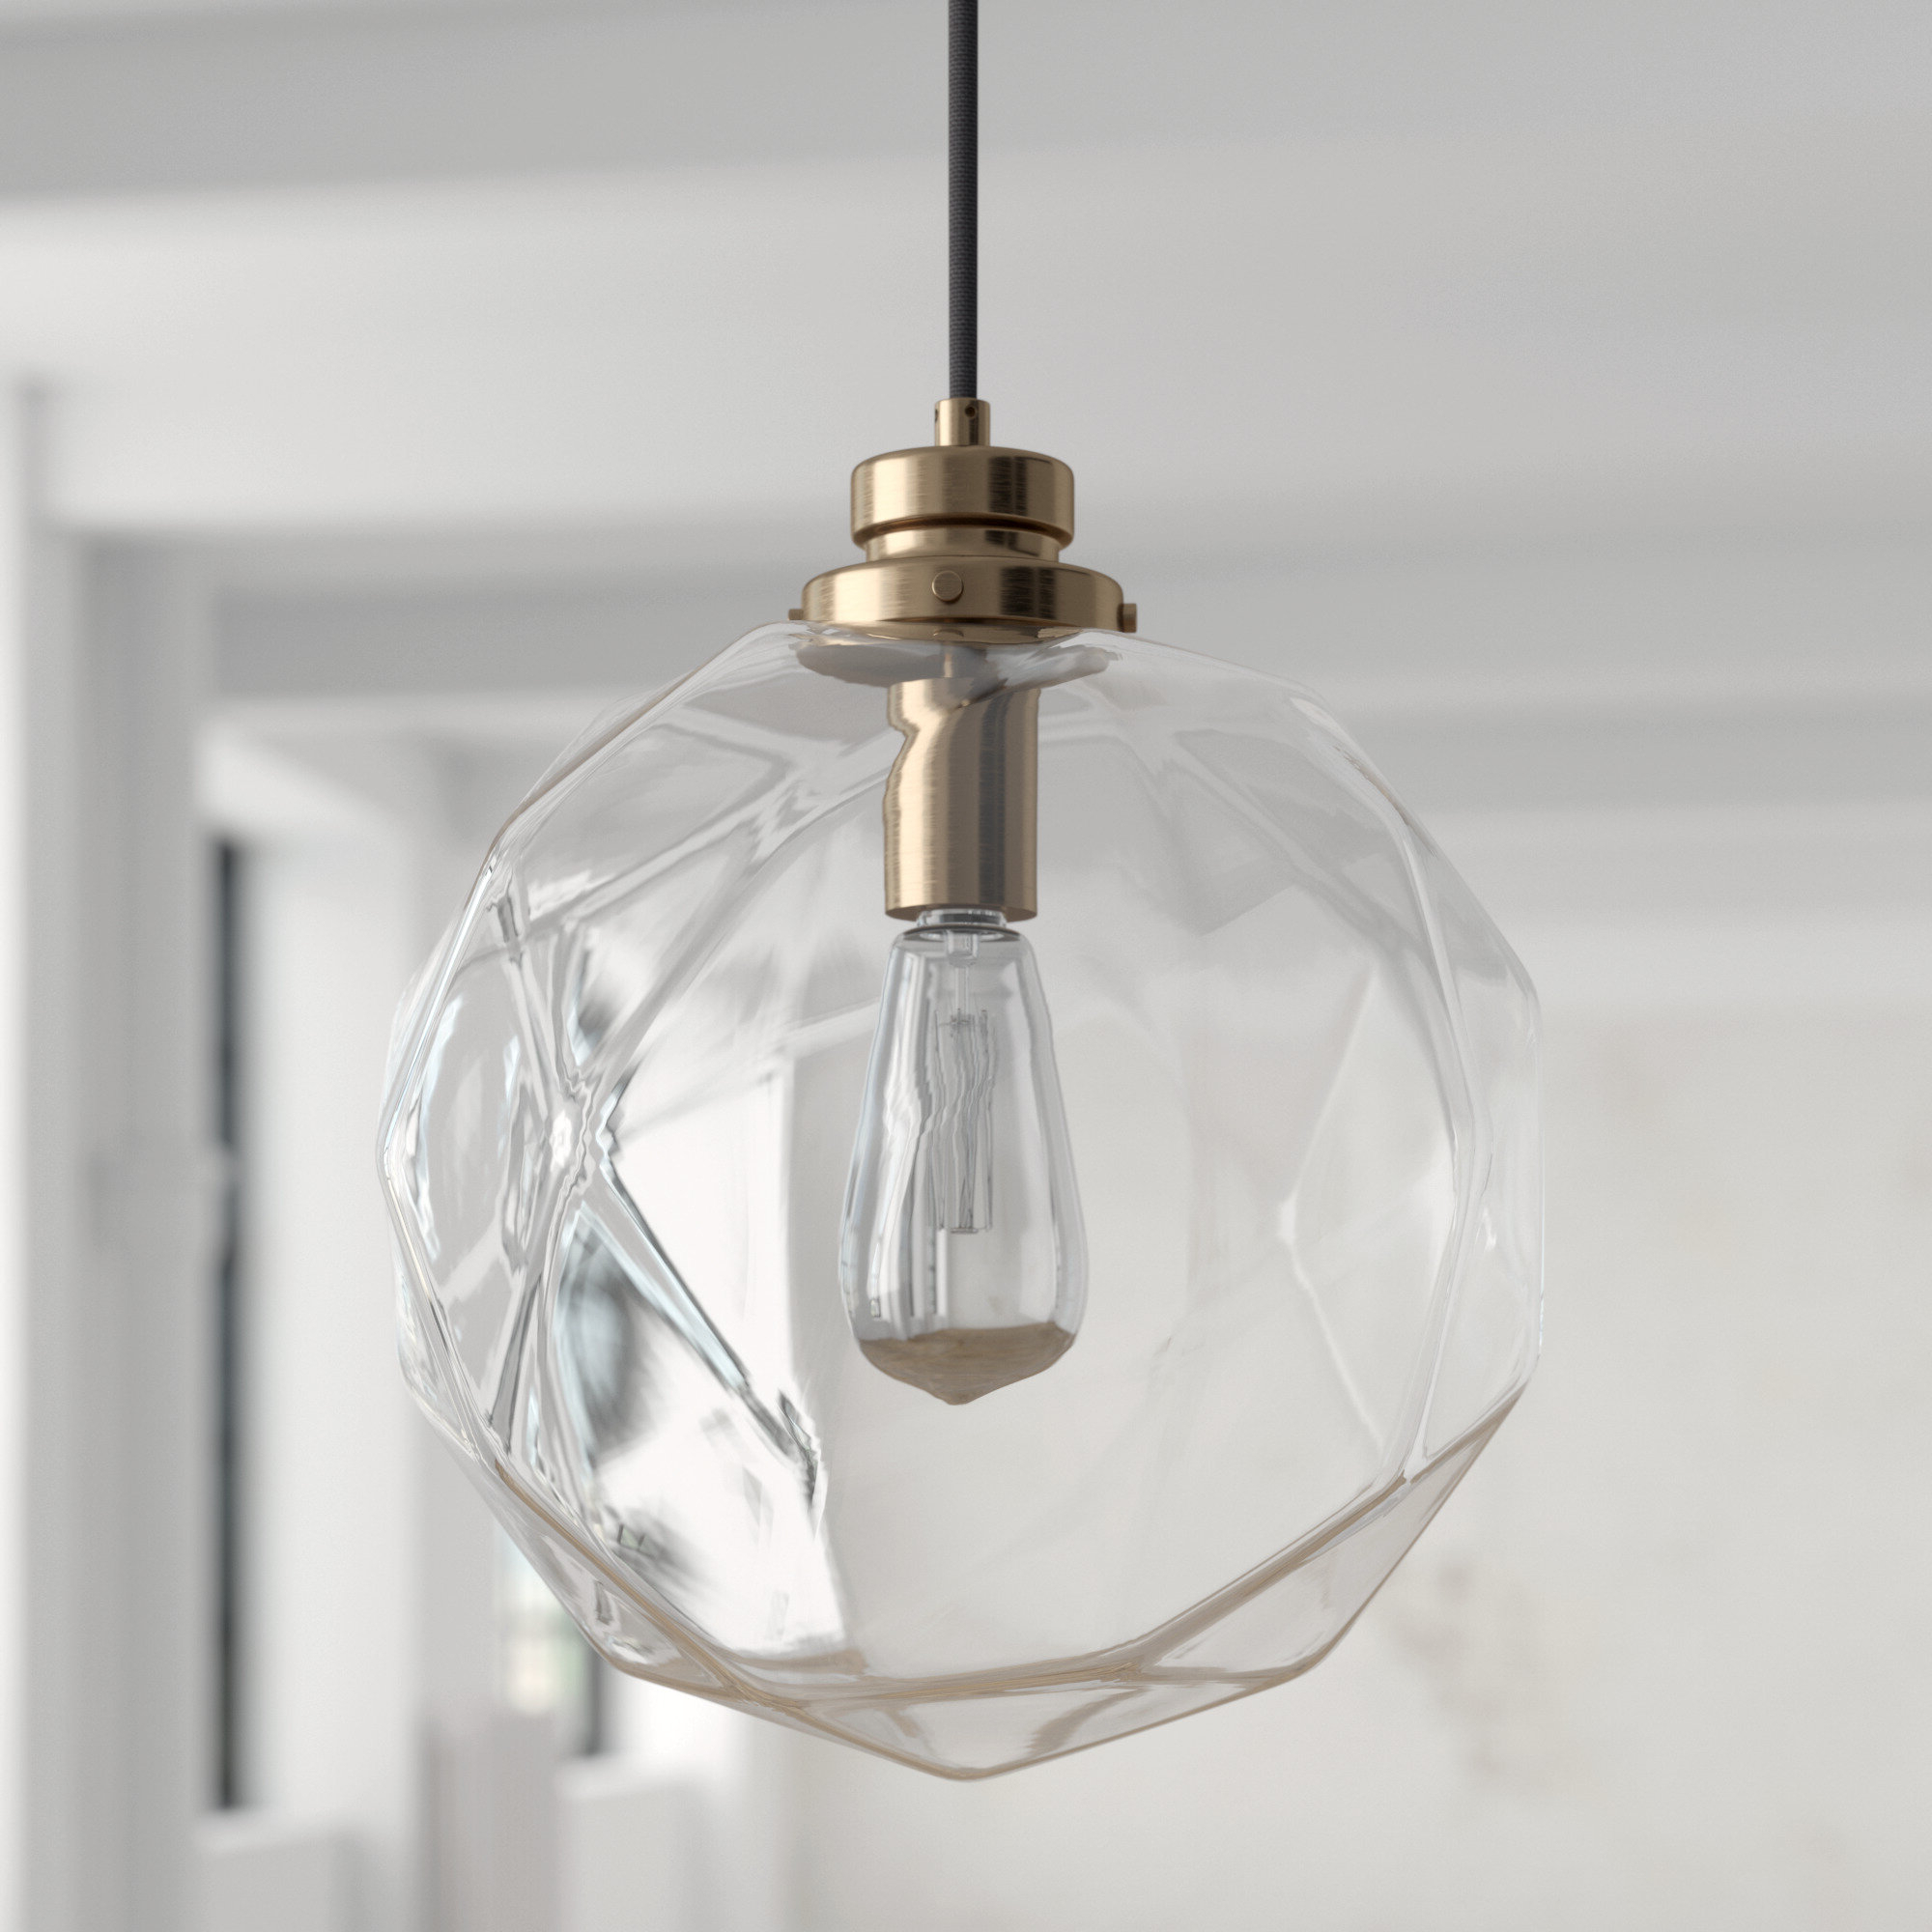 Sussex 1 Light Single Geometric Pendants Within Preferred Mercury Row 1 Light Geometric Globe Pendant & Reviews (View 8 of 25)